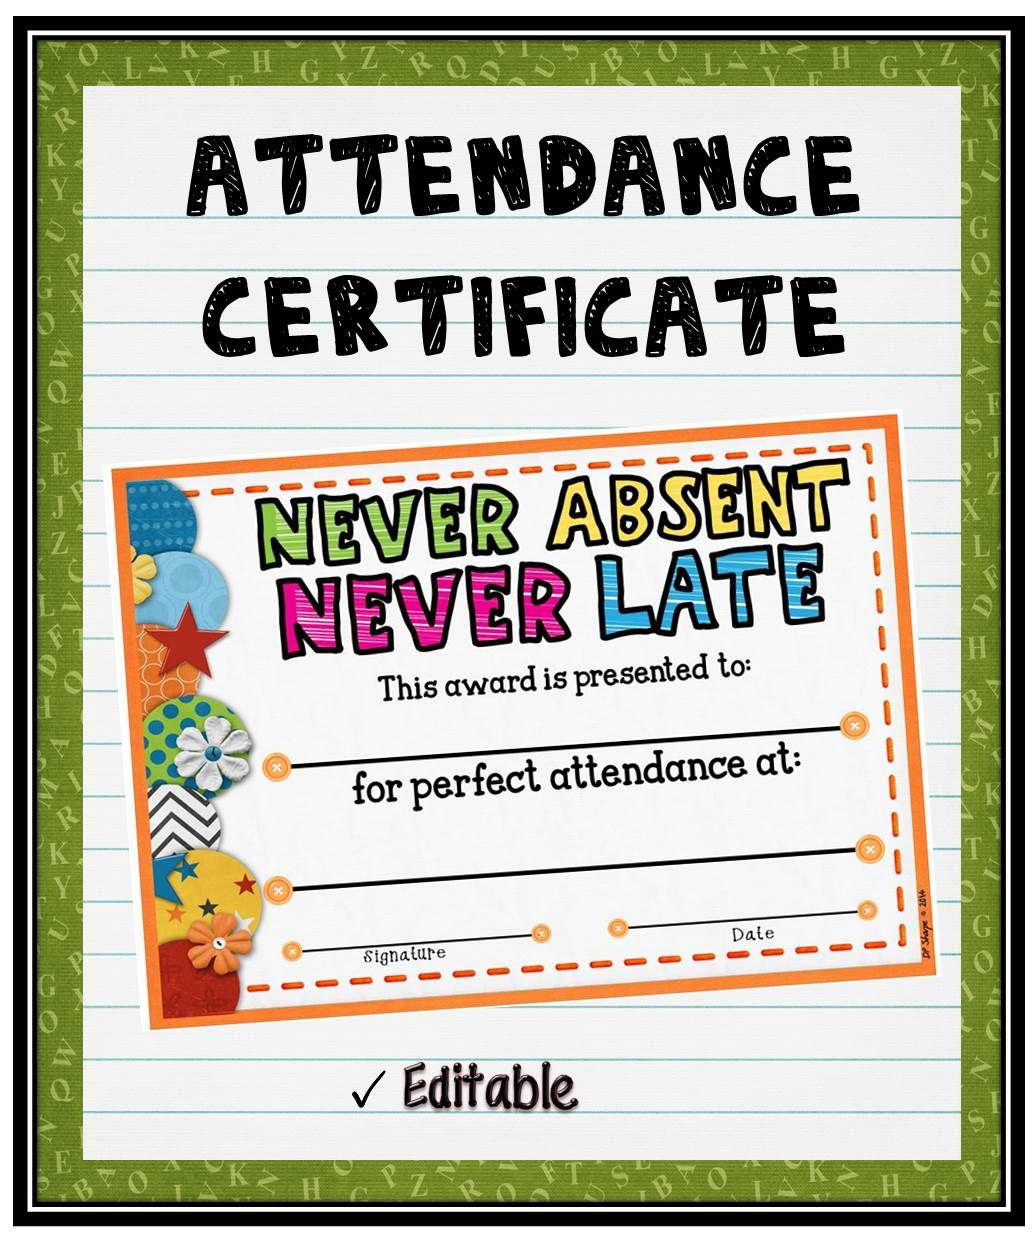 Attendance Certificate 2 Words Of Encouragement